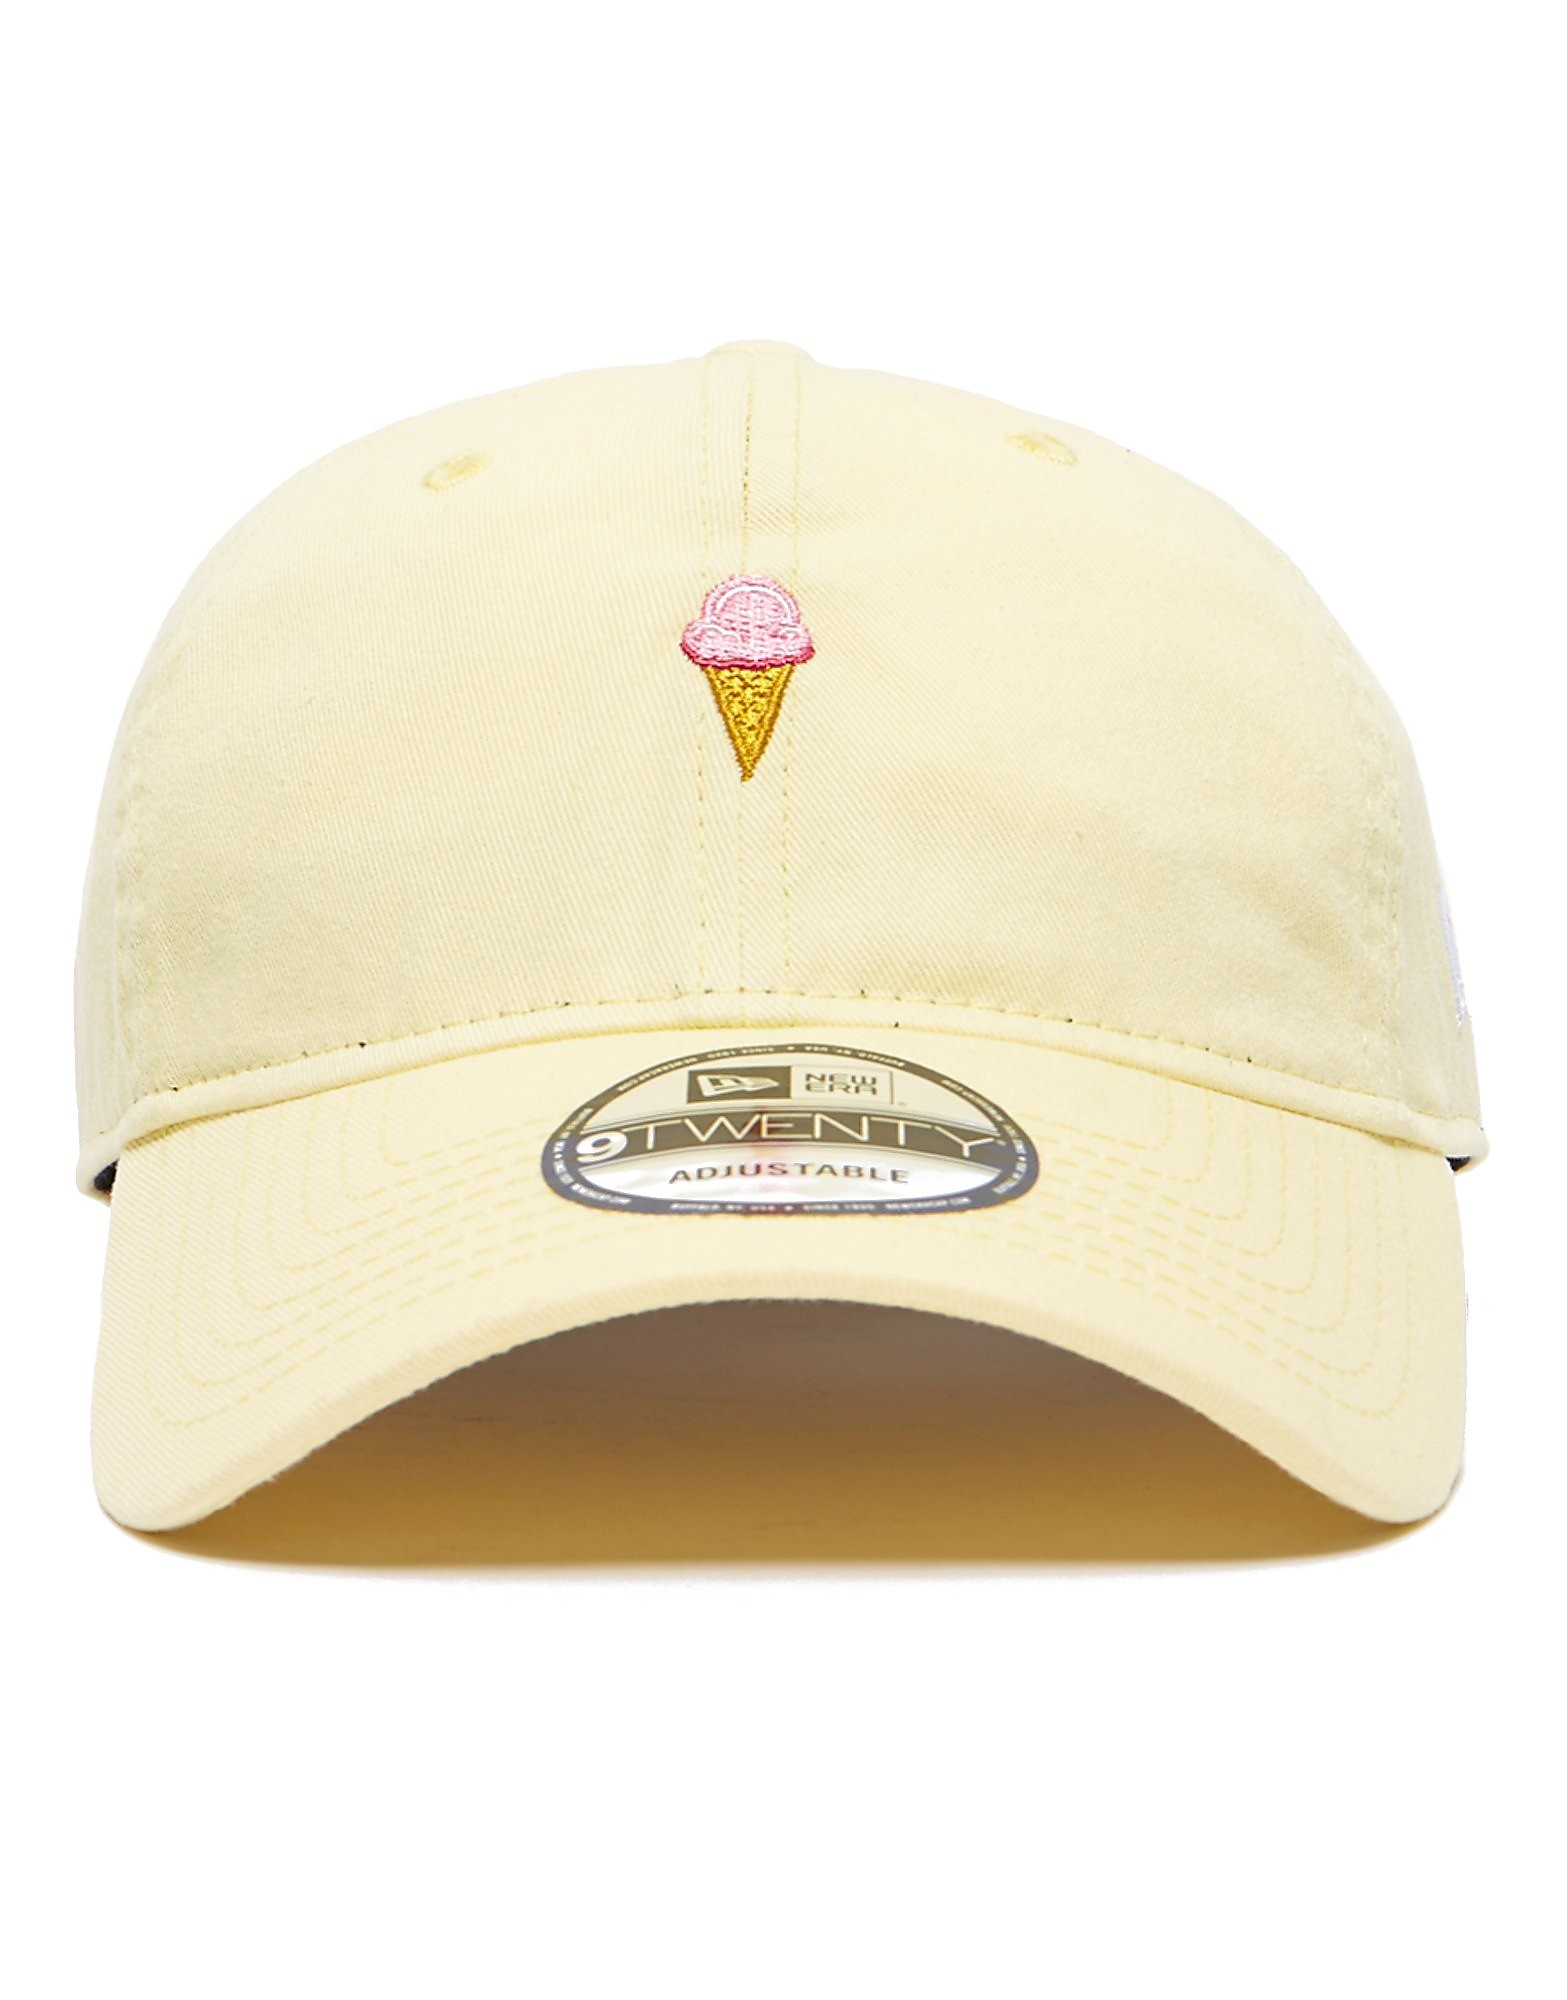 New Era 9TWENTY Ice Cream Cap